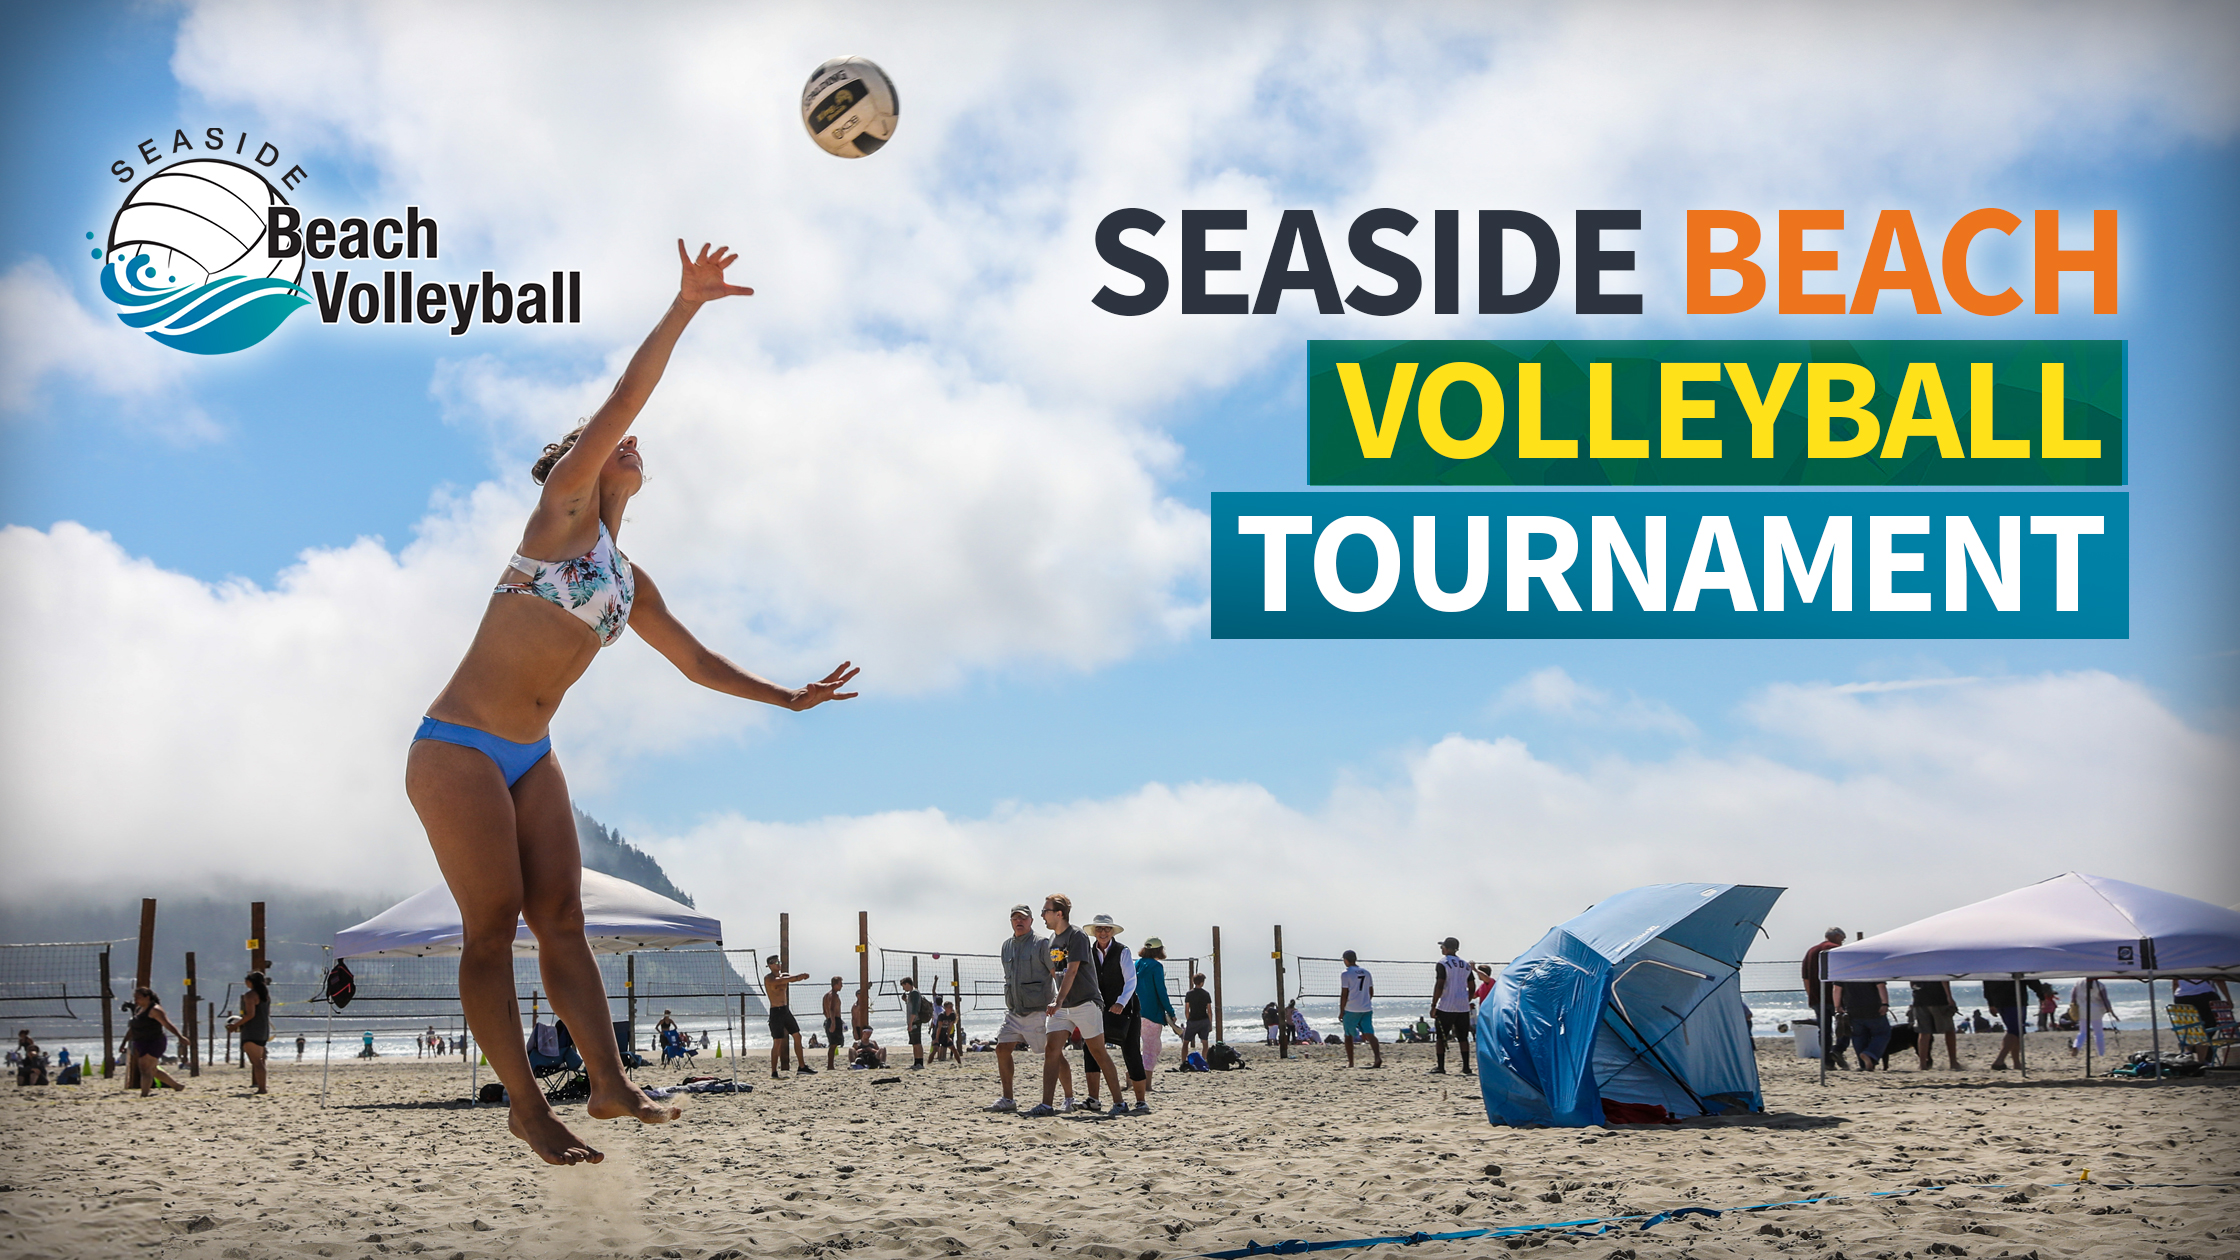 Seaside Beach Volleyball Tournament